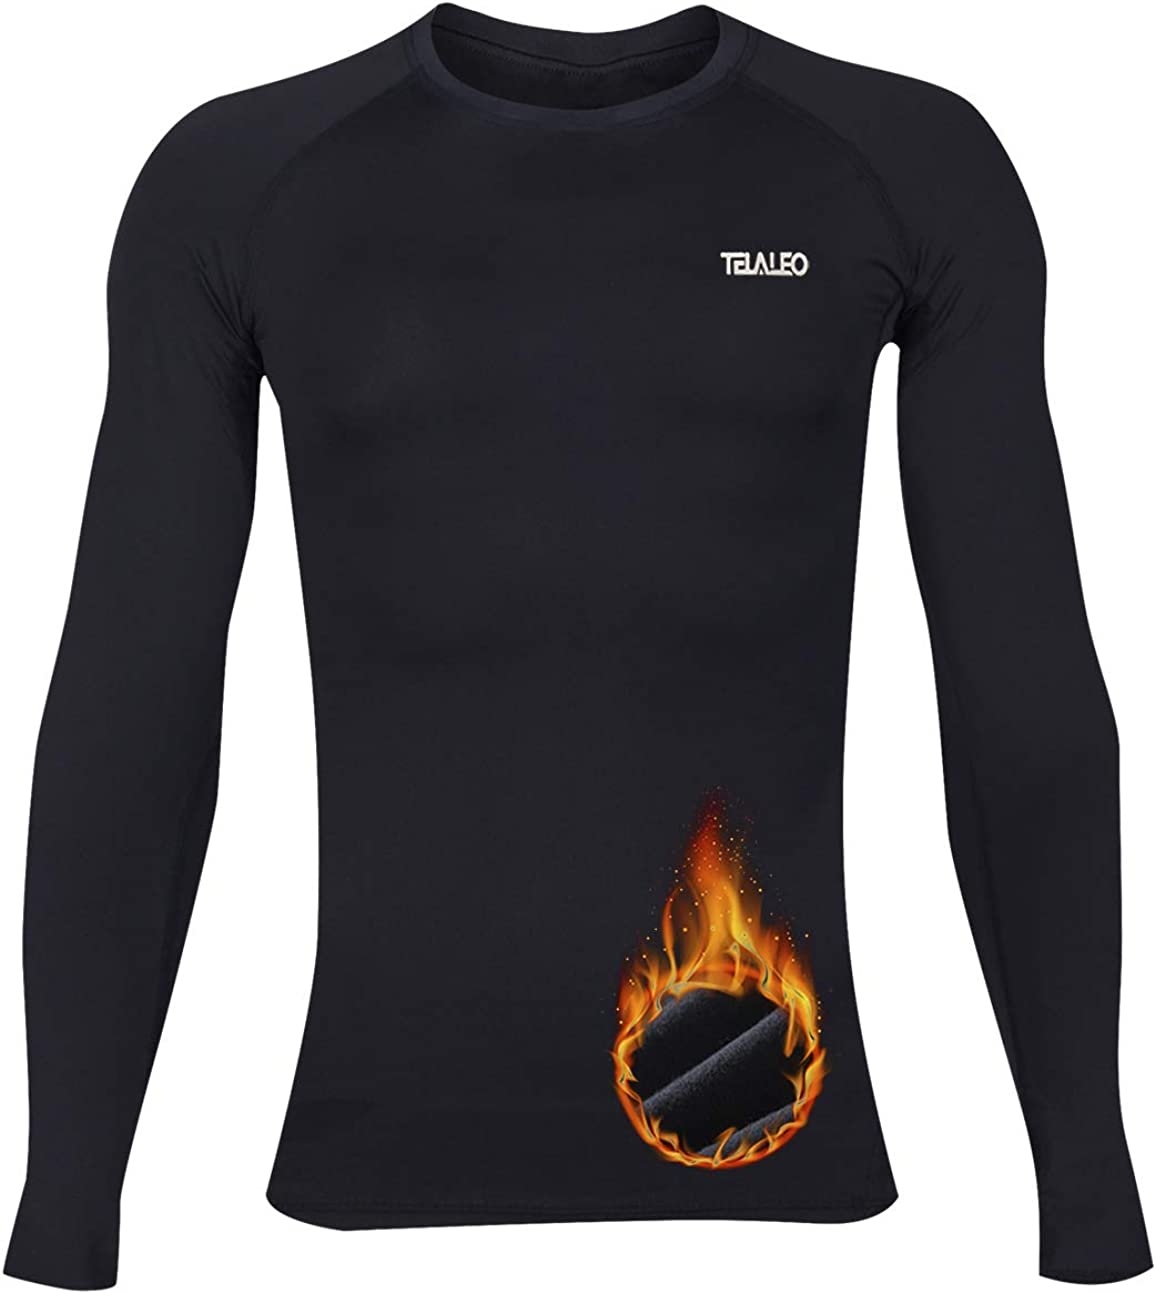 TELALEO Youth Boys' Girls' Thermal Compression Shirt Long Sleeve Fleece Lined Base Layer Athletic Football Undershirt